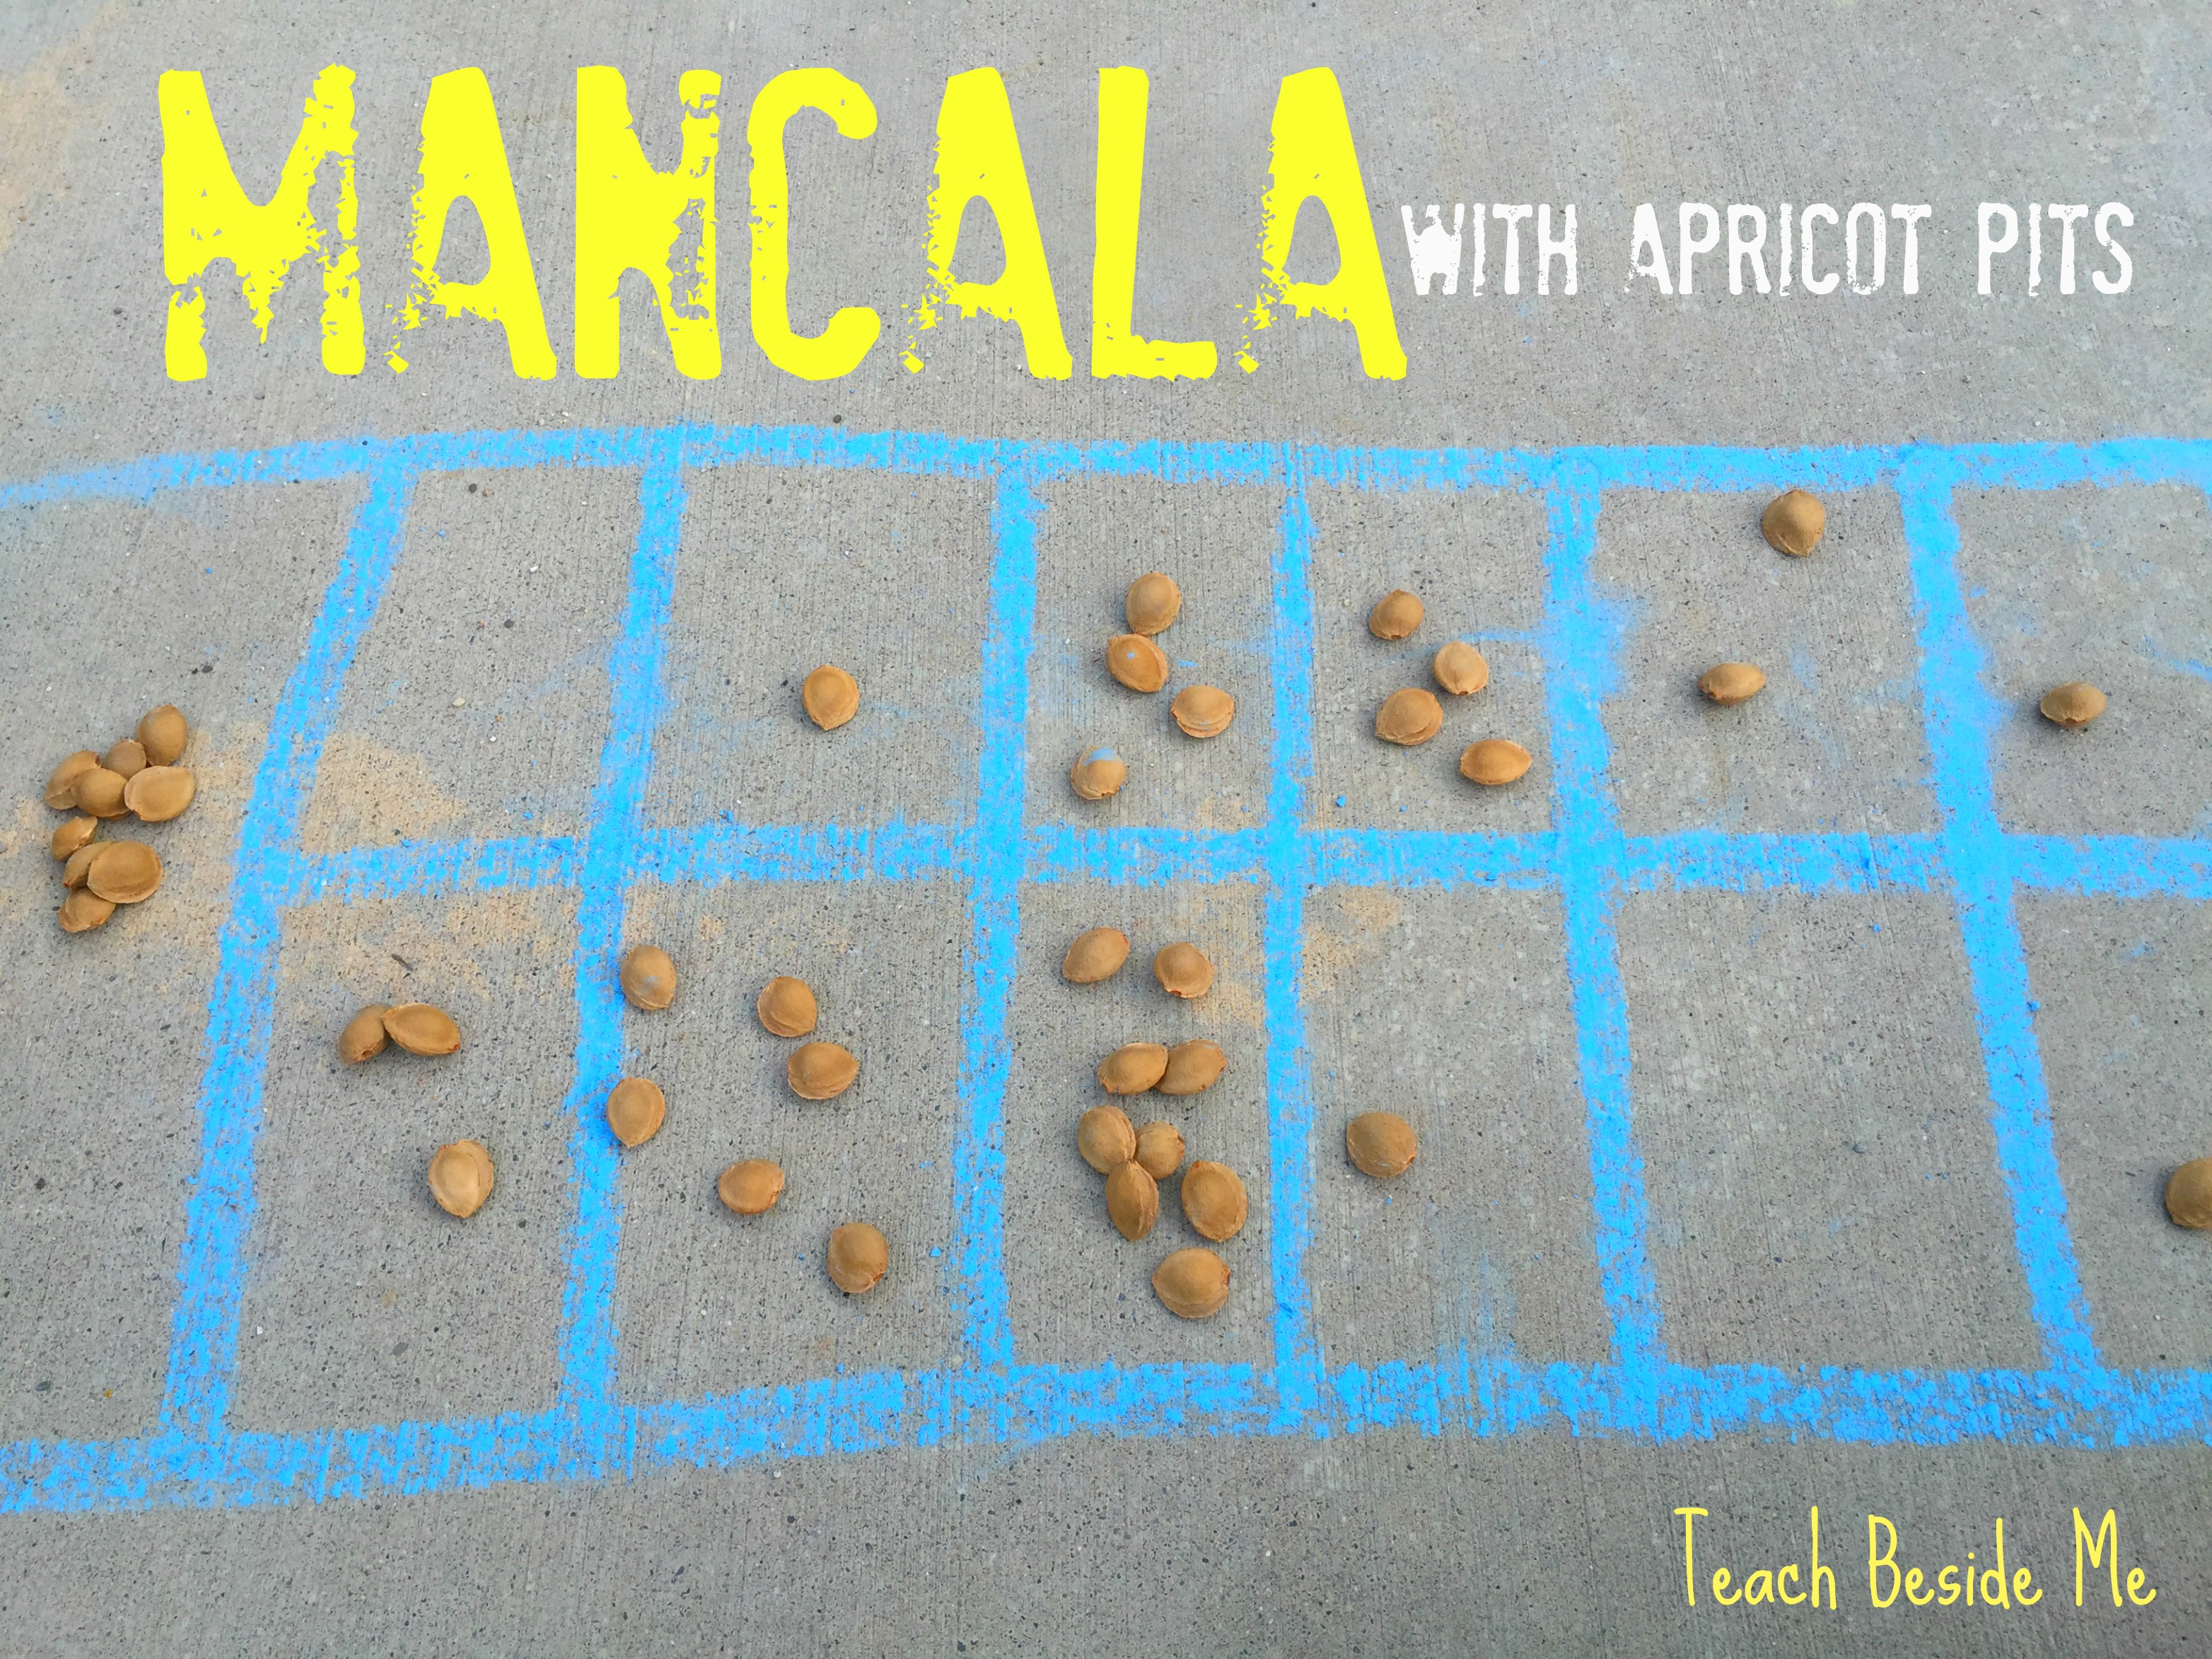 Sidewalk Chalk Mancala with Apricot Pits, Ethiopia Unit